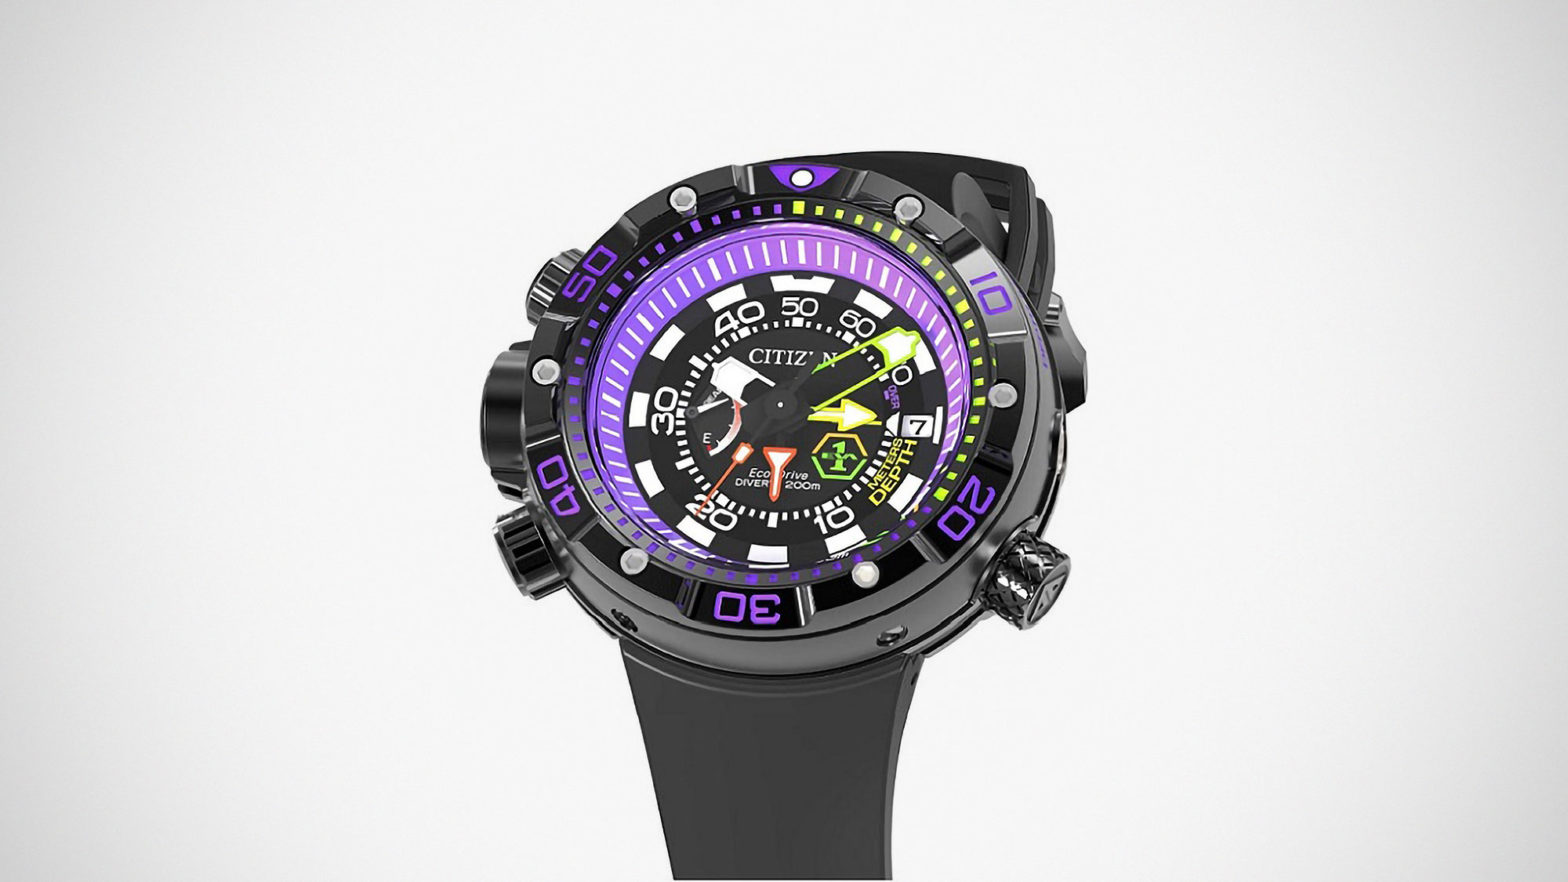 Evangelion x Citizen PROMASTER Watch